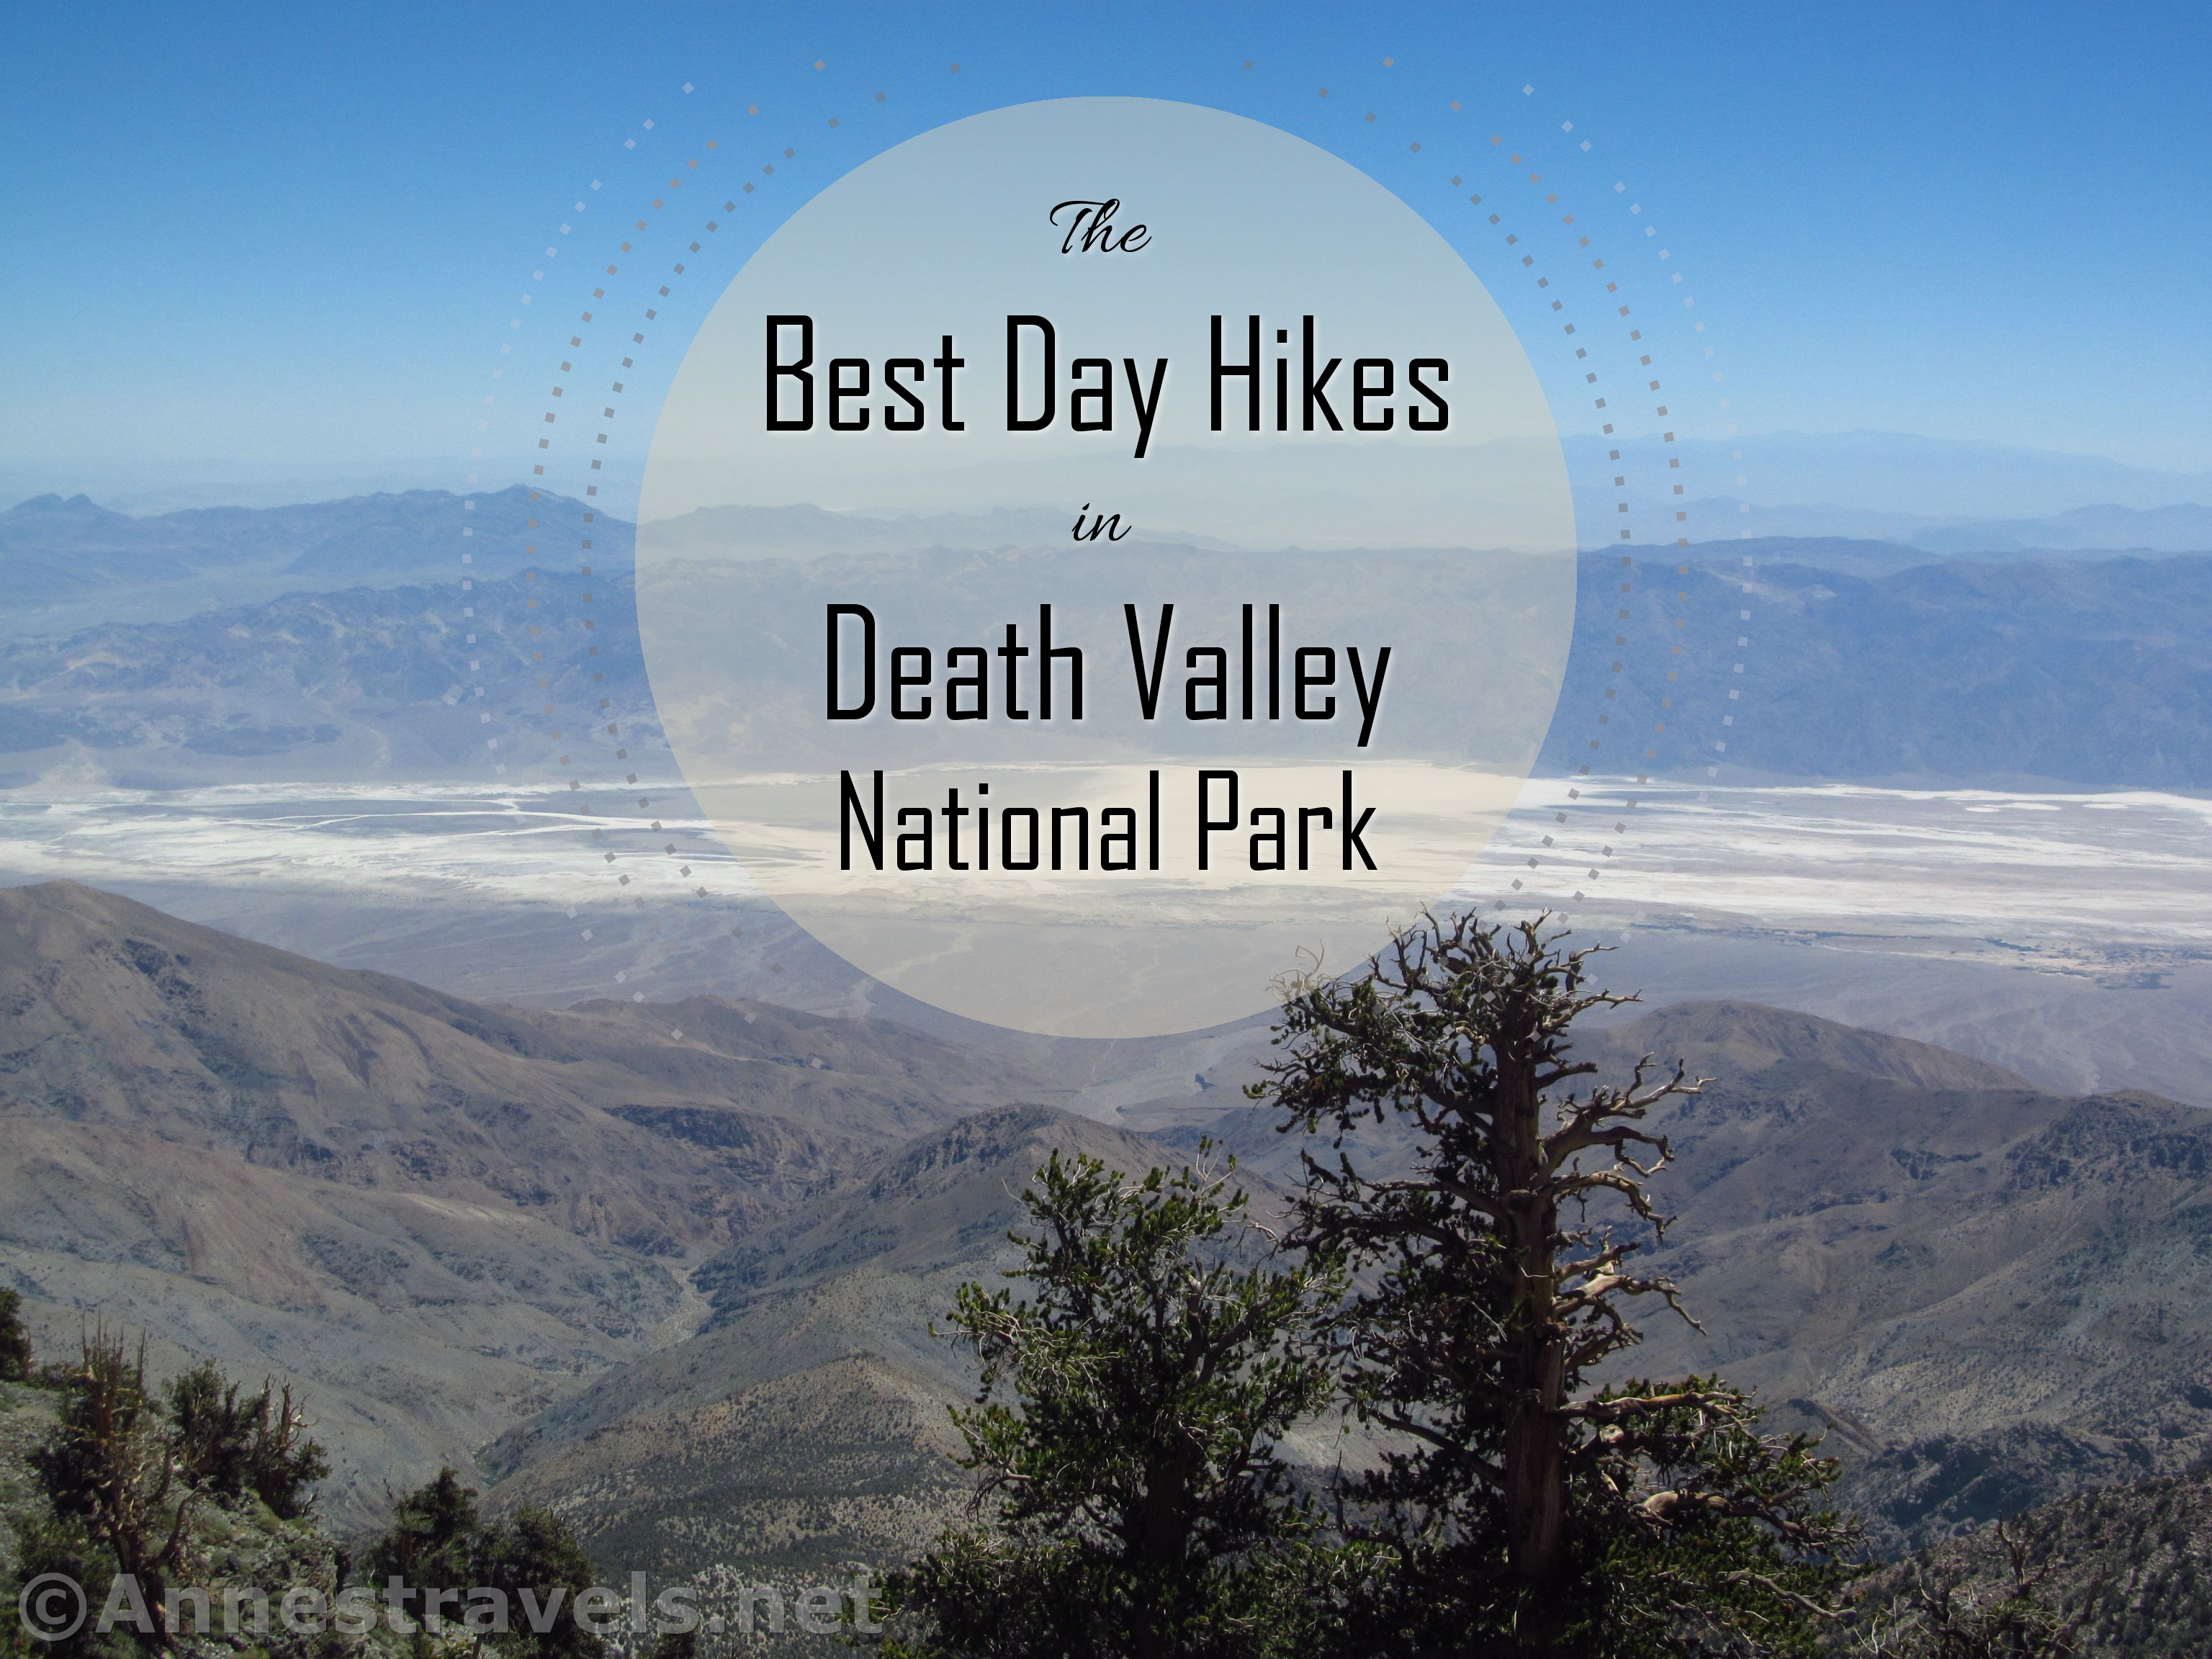 10 Best Day Hikes in Death Valley National Park - Anne's Travels